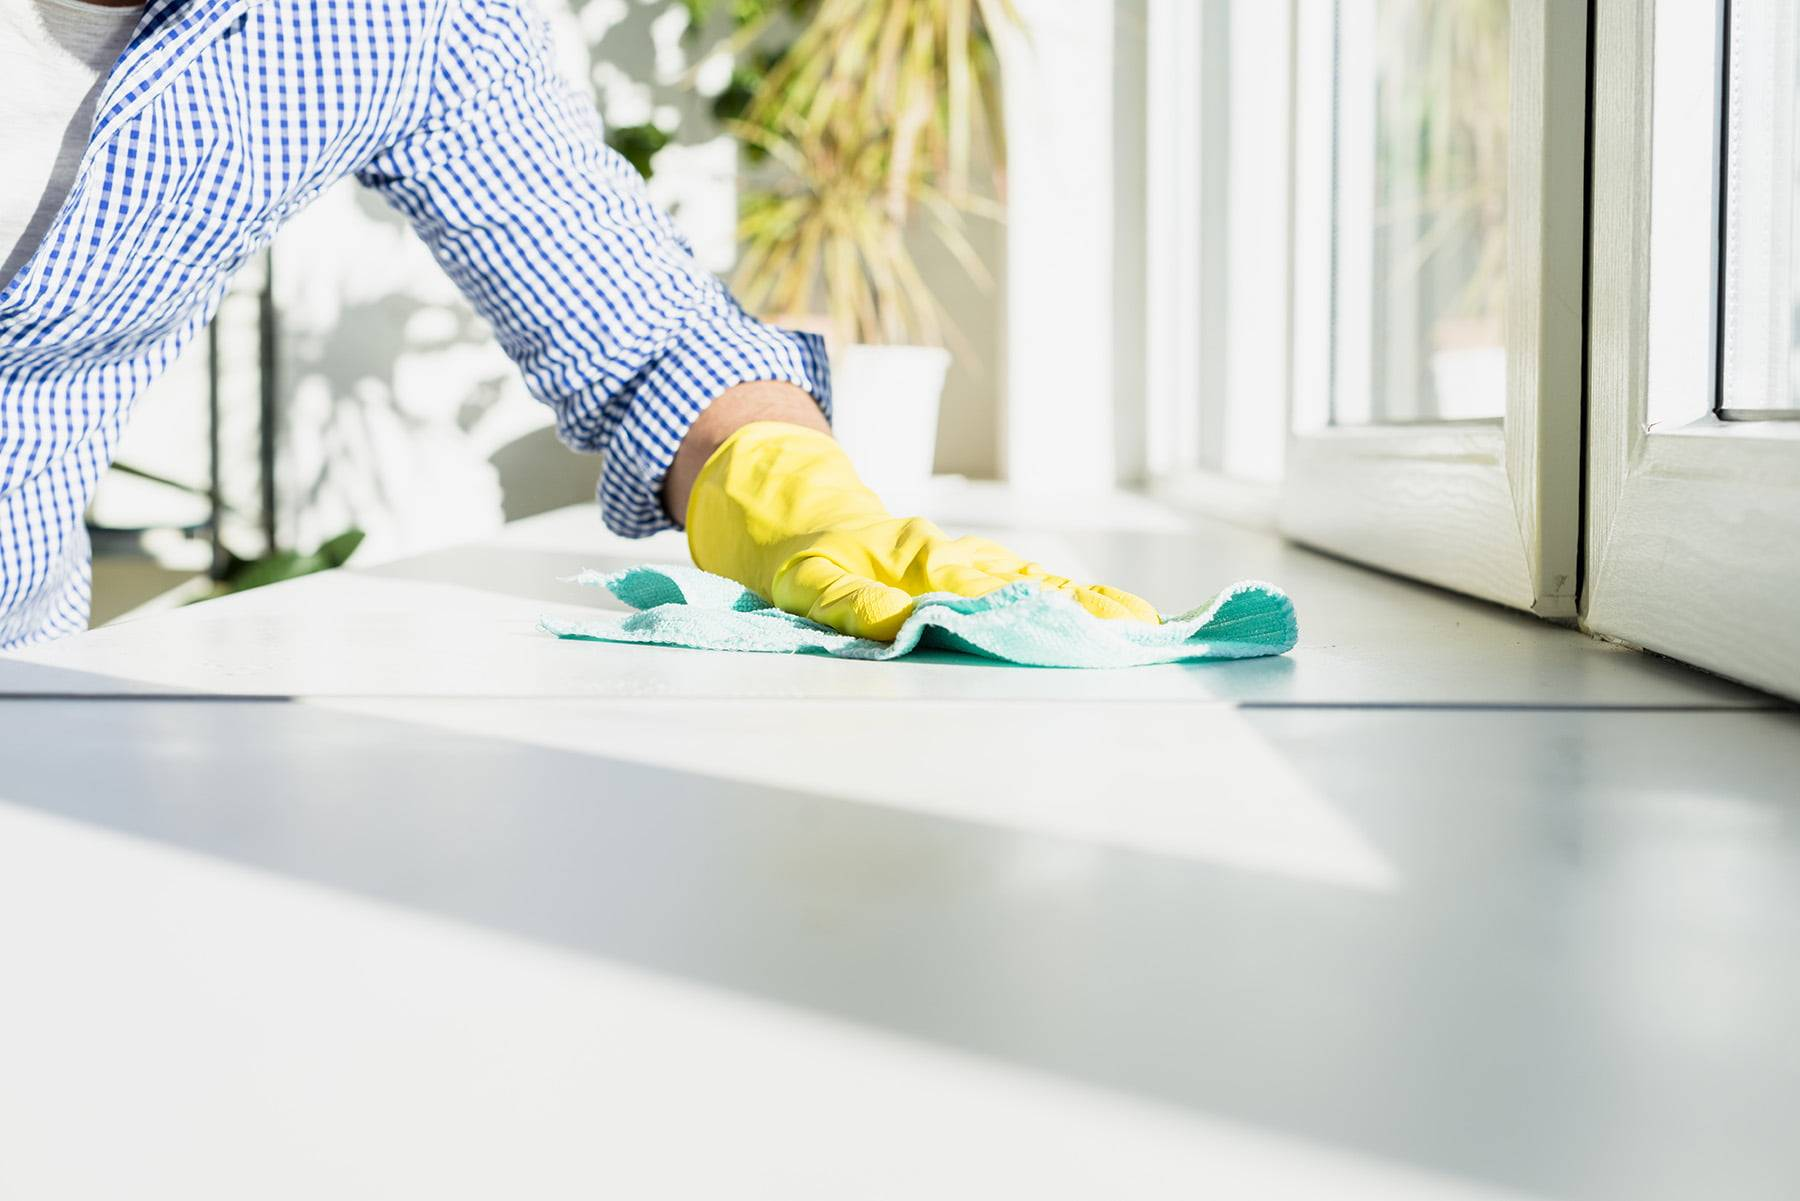 Man with a checkered shirt on cleaning a kitchen bench